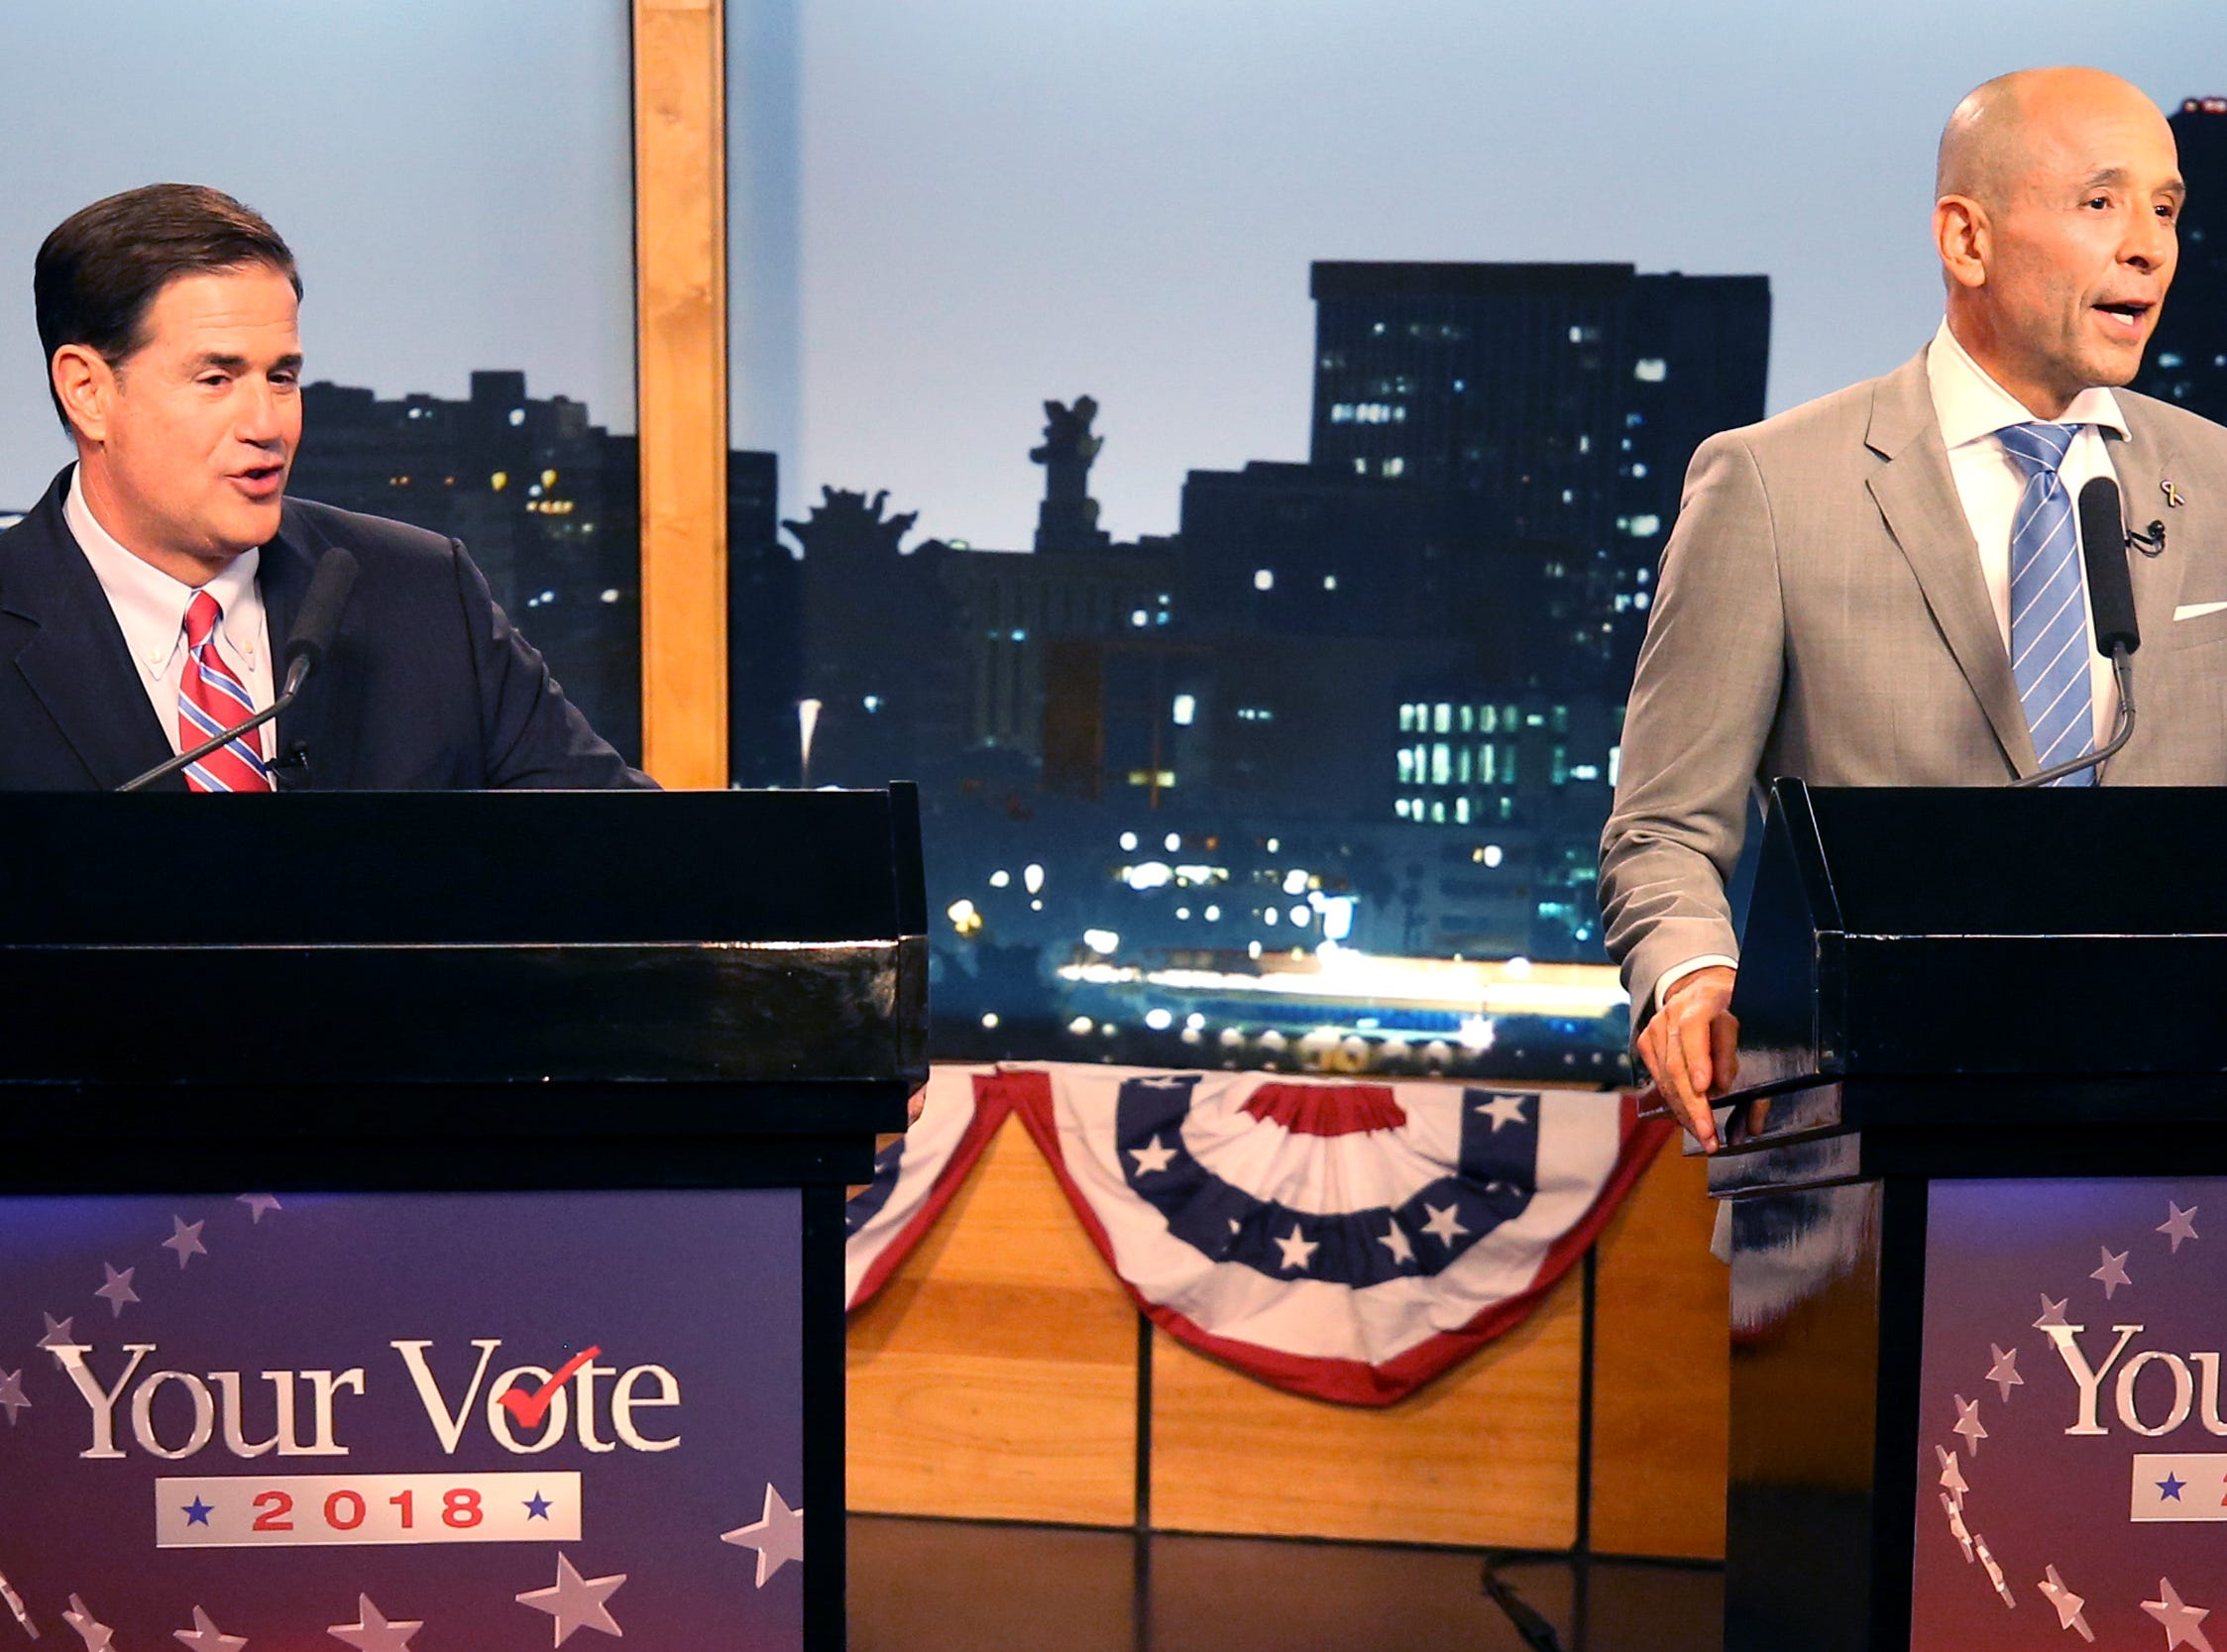 Gubernatorial candidates Republican Doug Ducey, left, and Democrat David Garcia at a televised debate in the AZPM studios, Tuesday, Sept. 25, 2018, in Tucson.